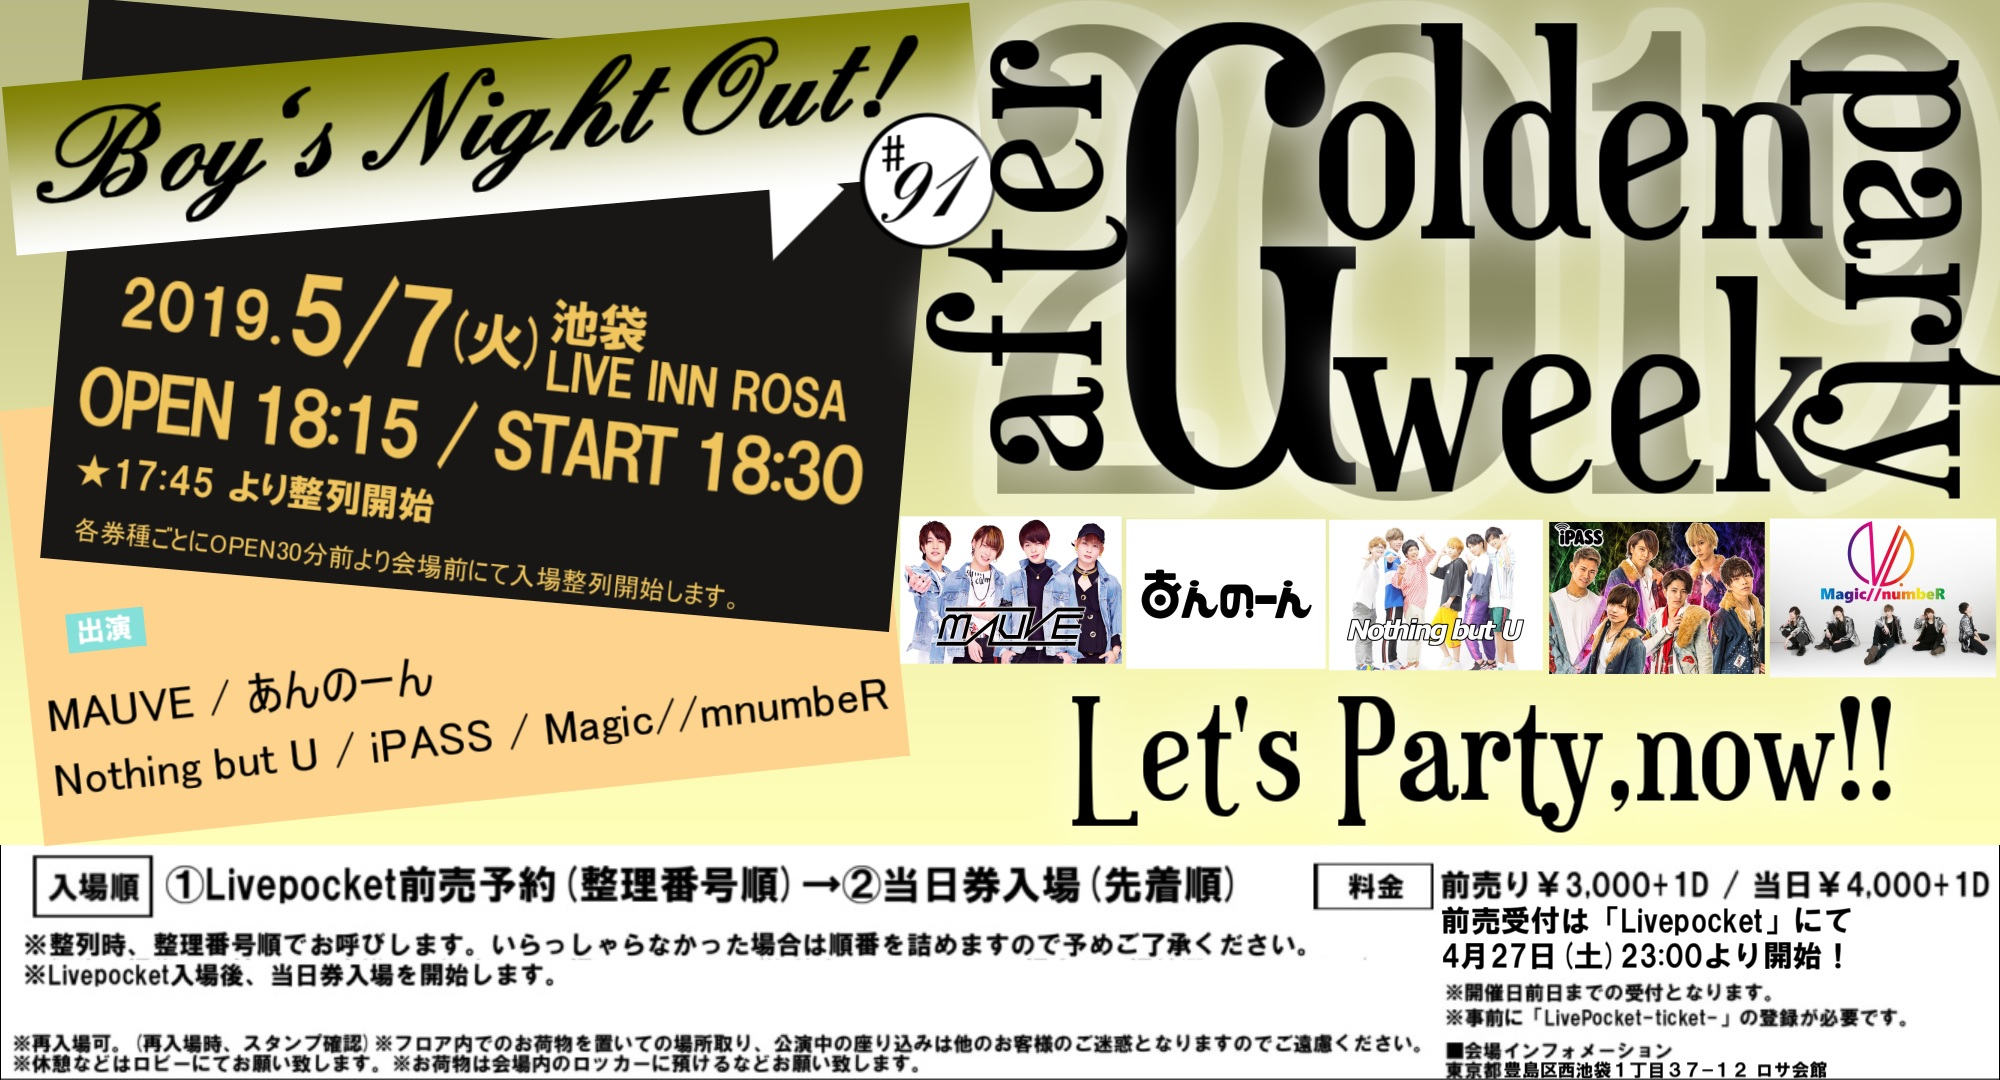 Boy's Night Out!#91~After GW party!!!~